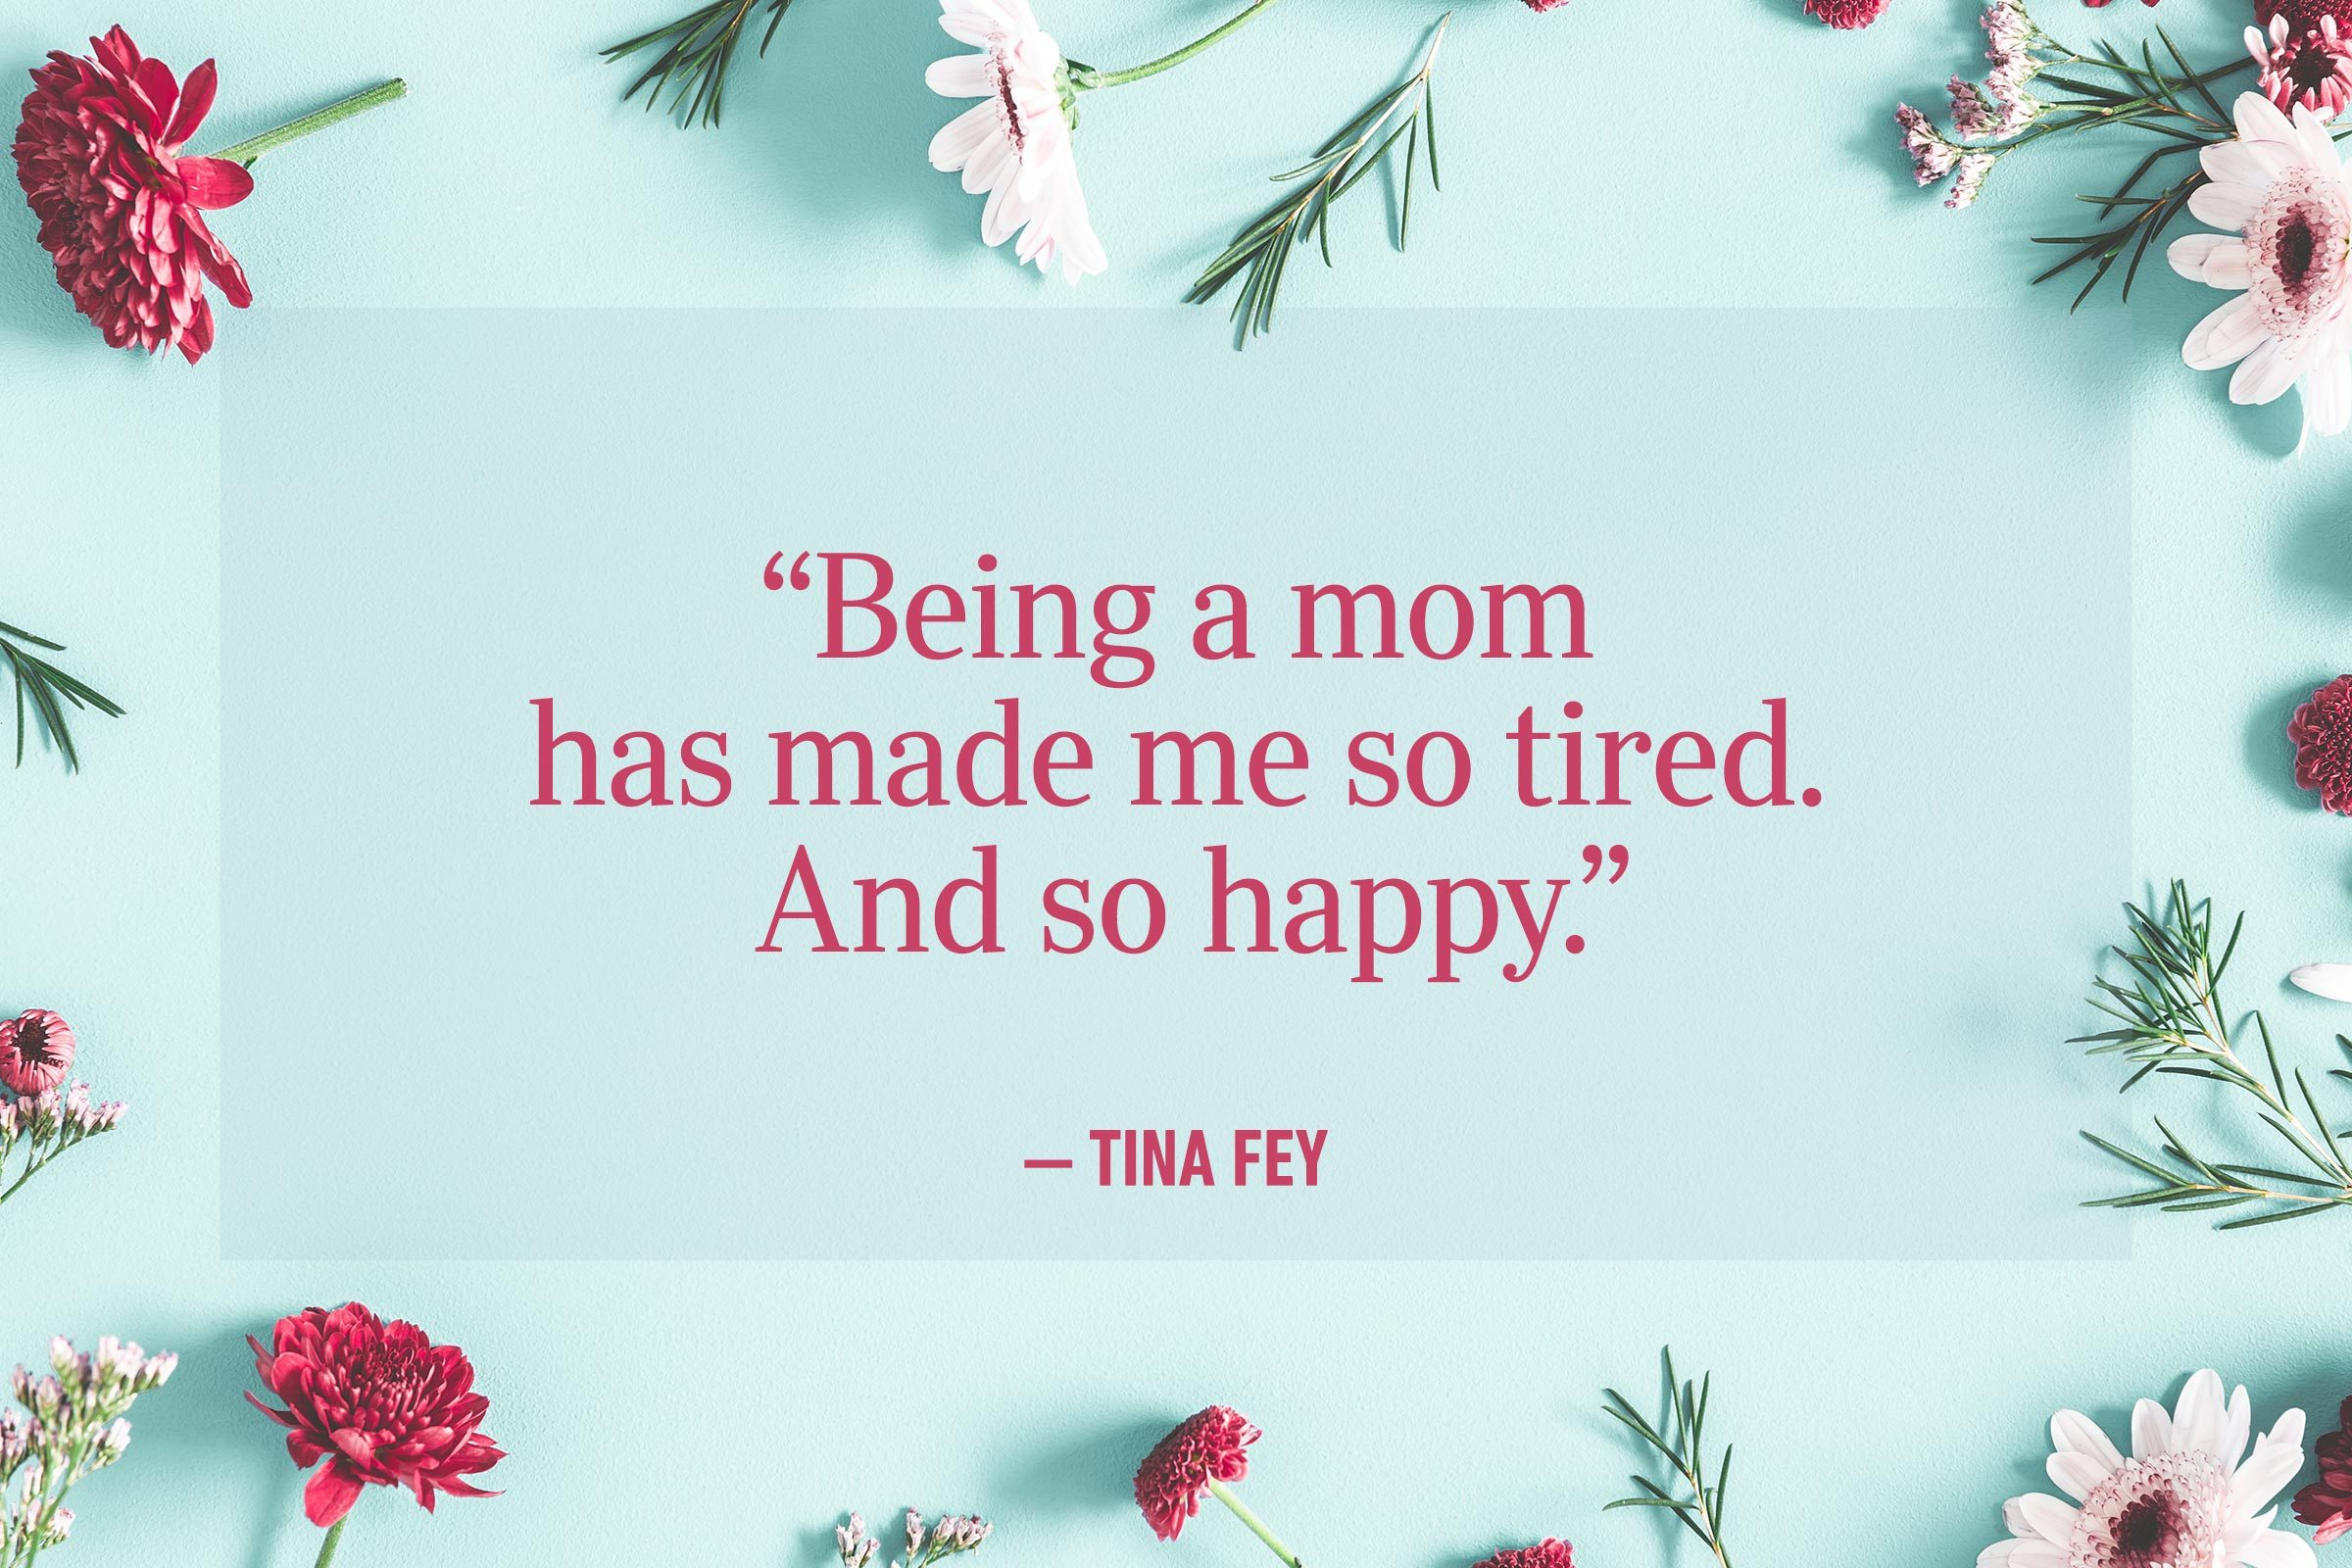 """Being a mom has made me so tired. And so happy."" —Tina Fey"